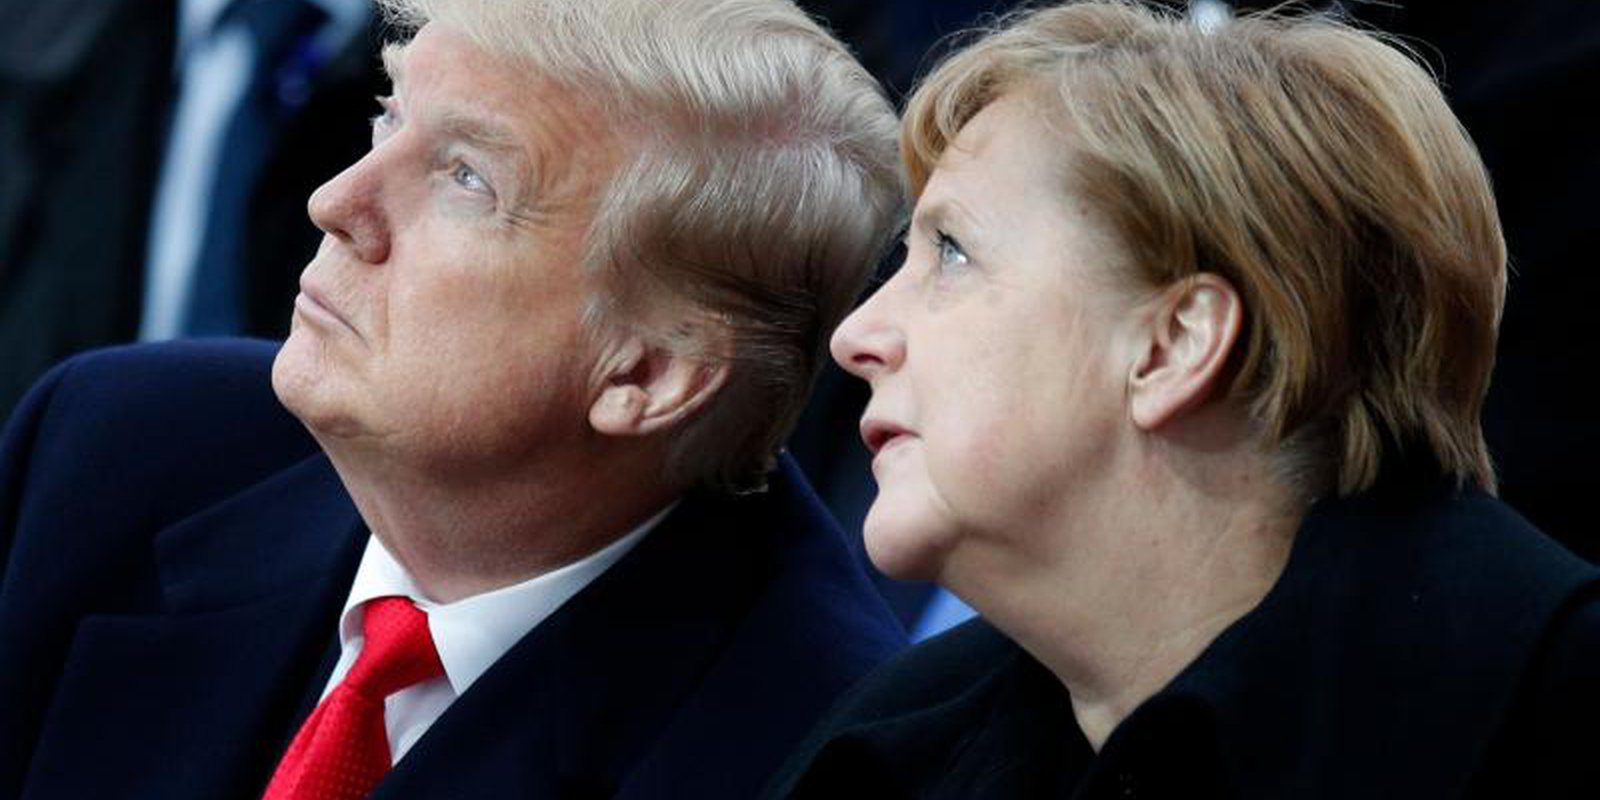 Donald Trump and Angela Merkel at the commemorations marking the 100th anniversary of the 11 November 1918 armistice, ending the First World War. Photo: Getty Images.